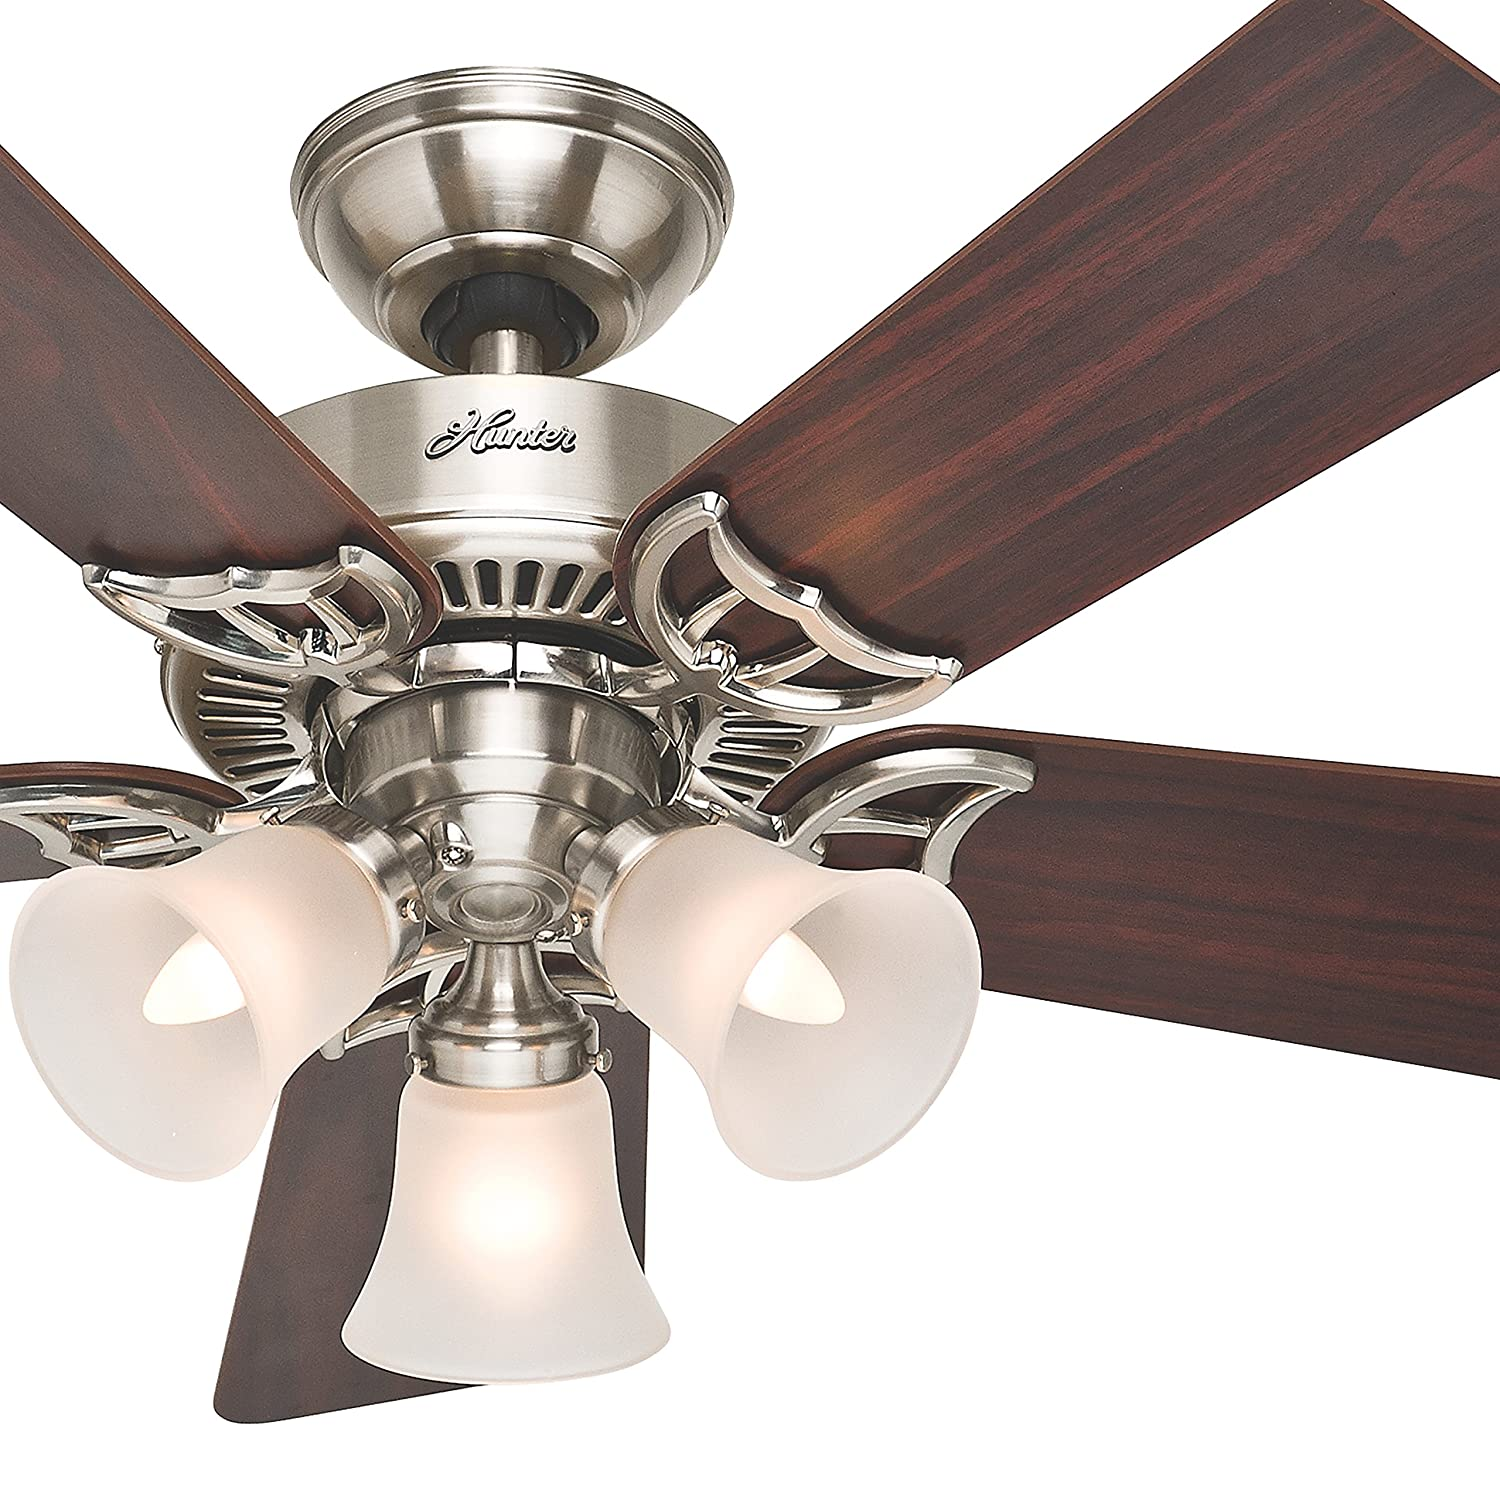 Hunter Fan 42 inch Ceiling Fan with Light in Brushed Nickel, 5 Blades Renewed